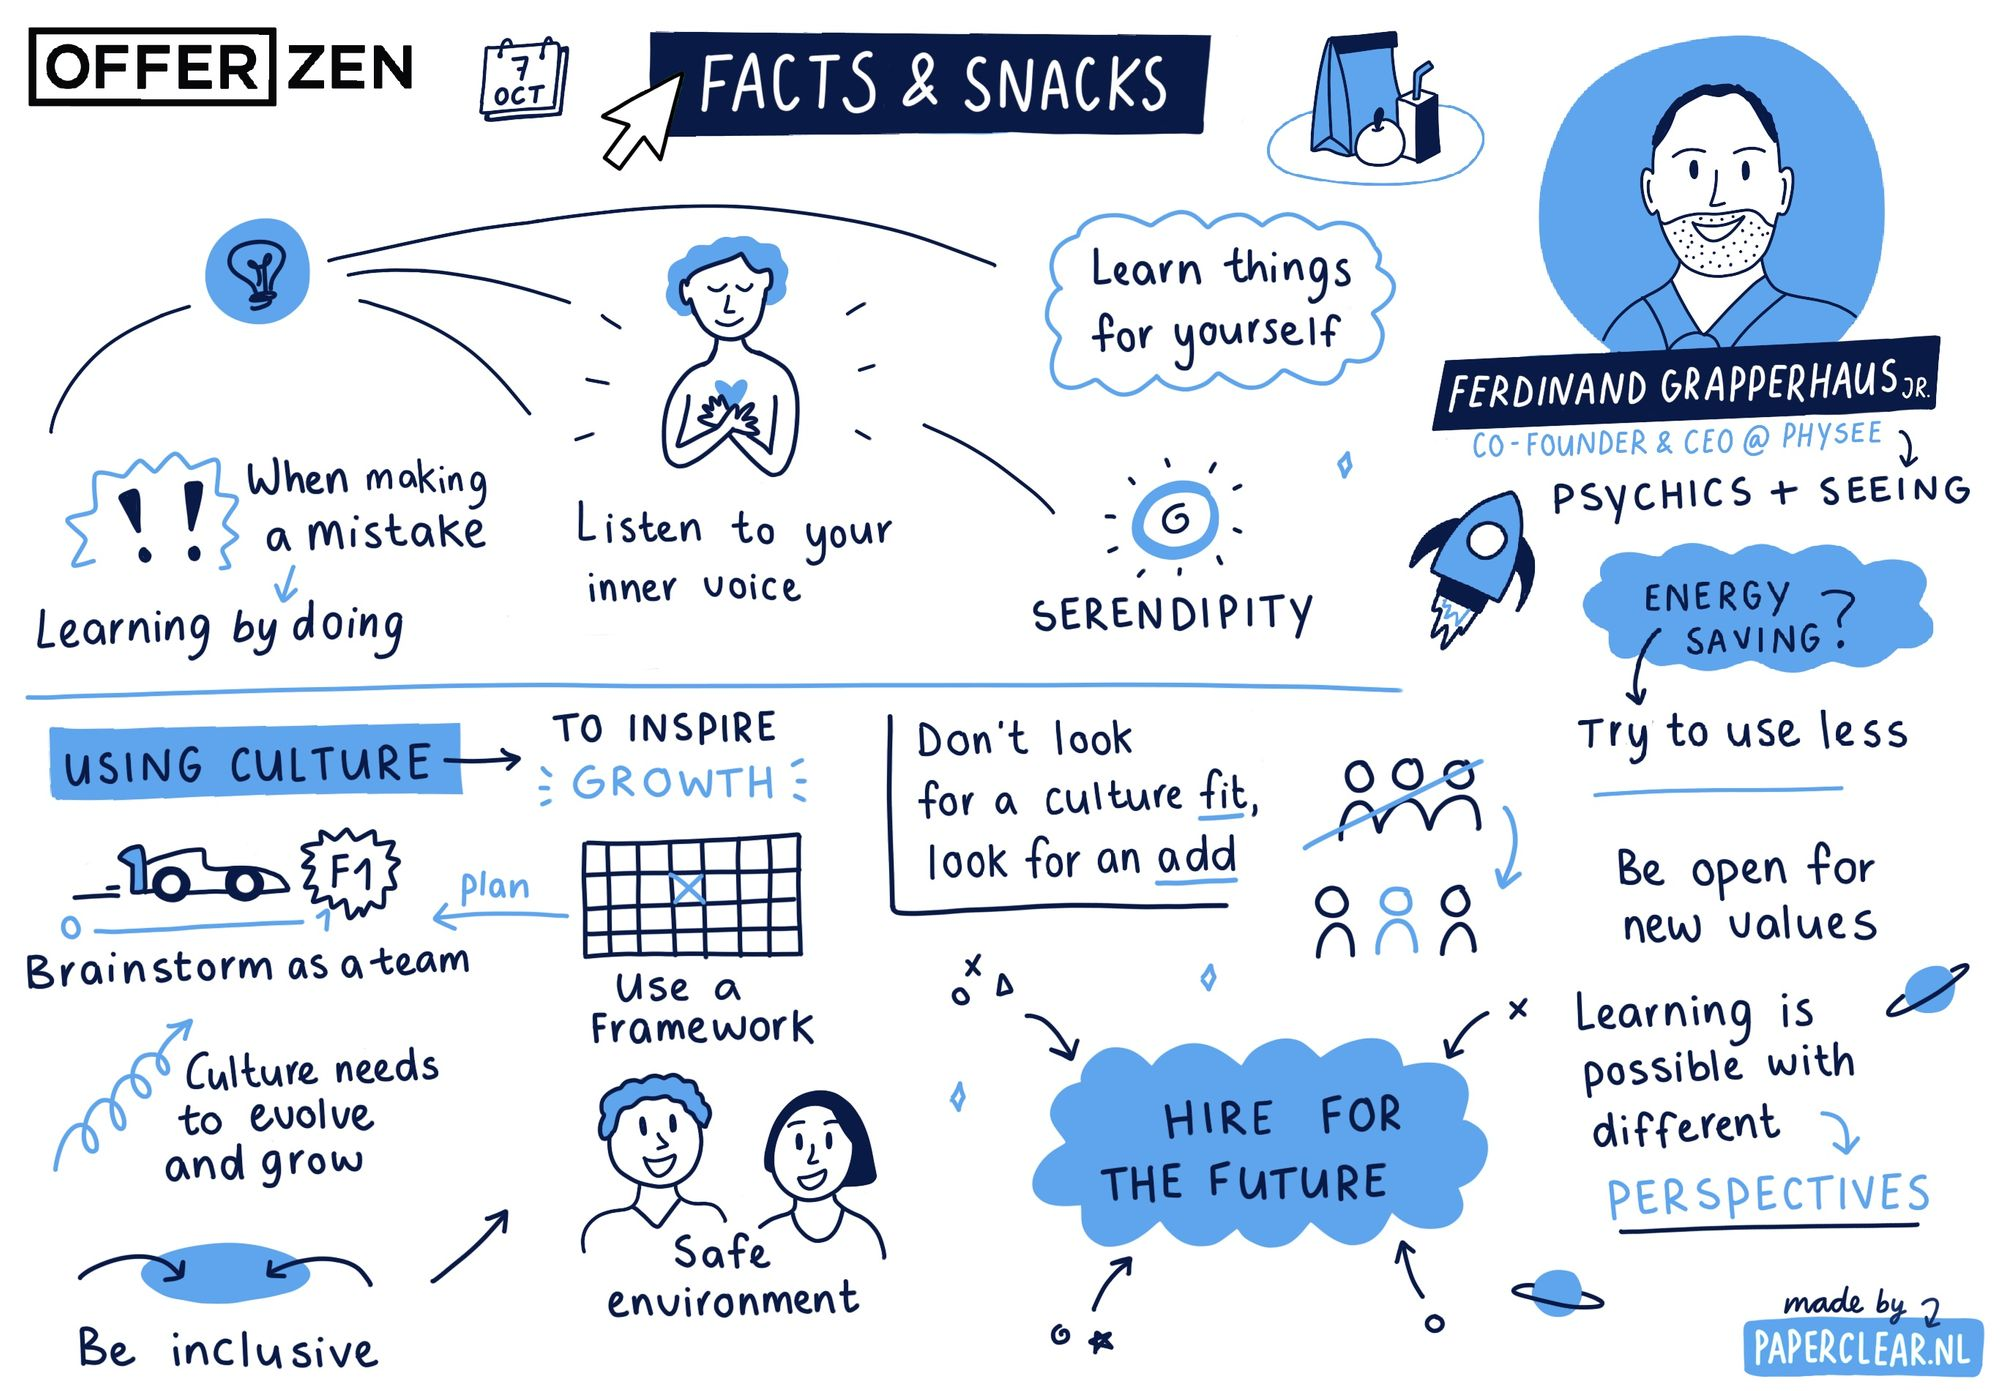 Facts_-_Snacks-3